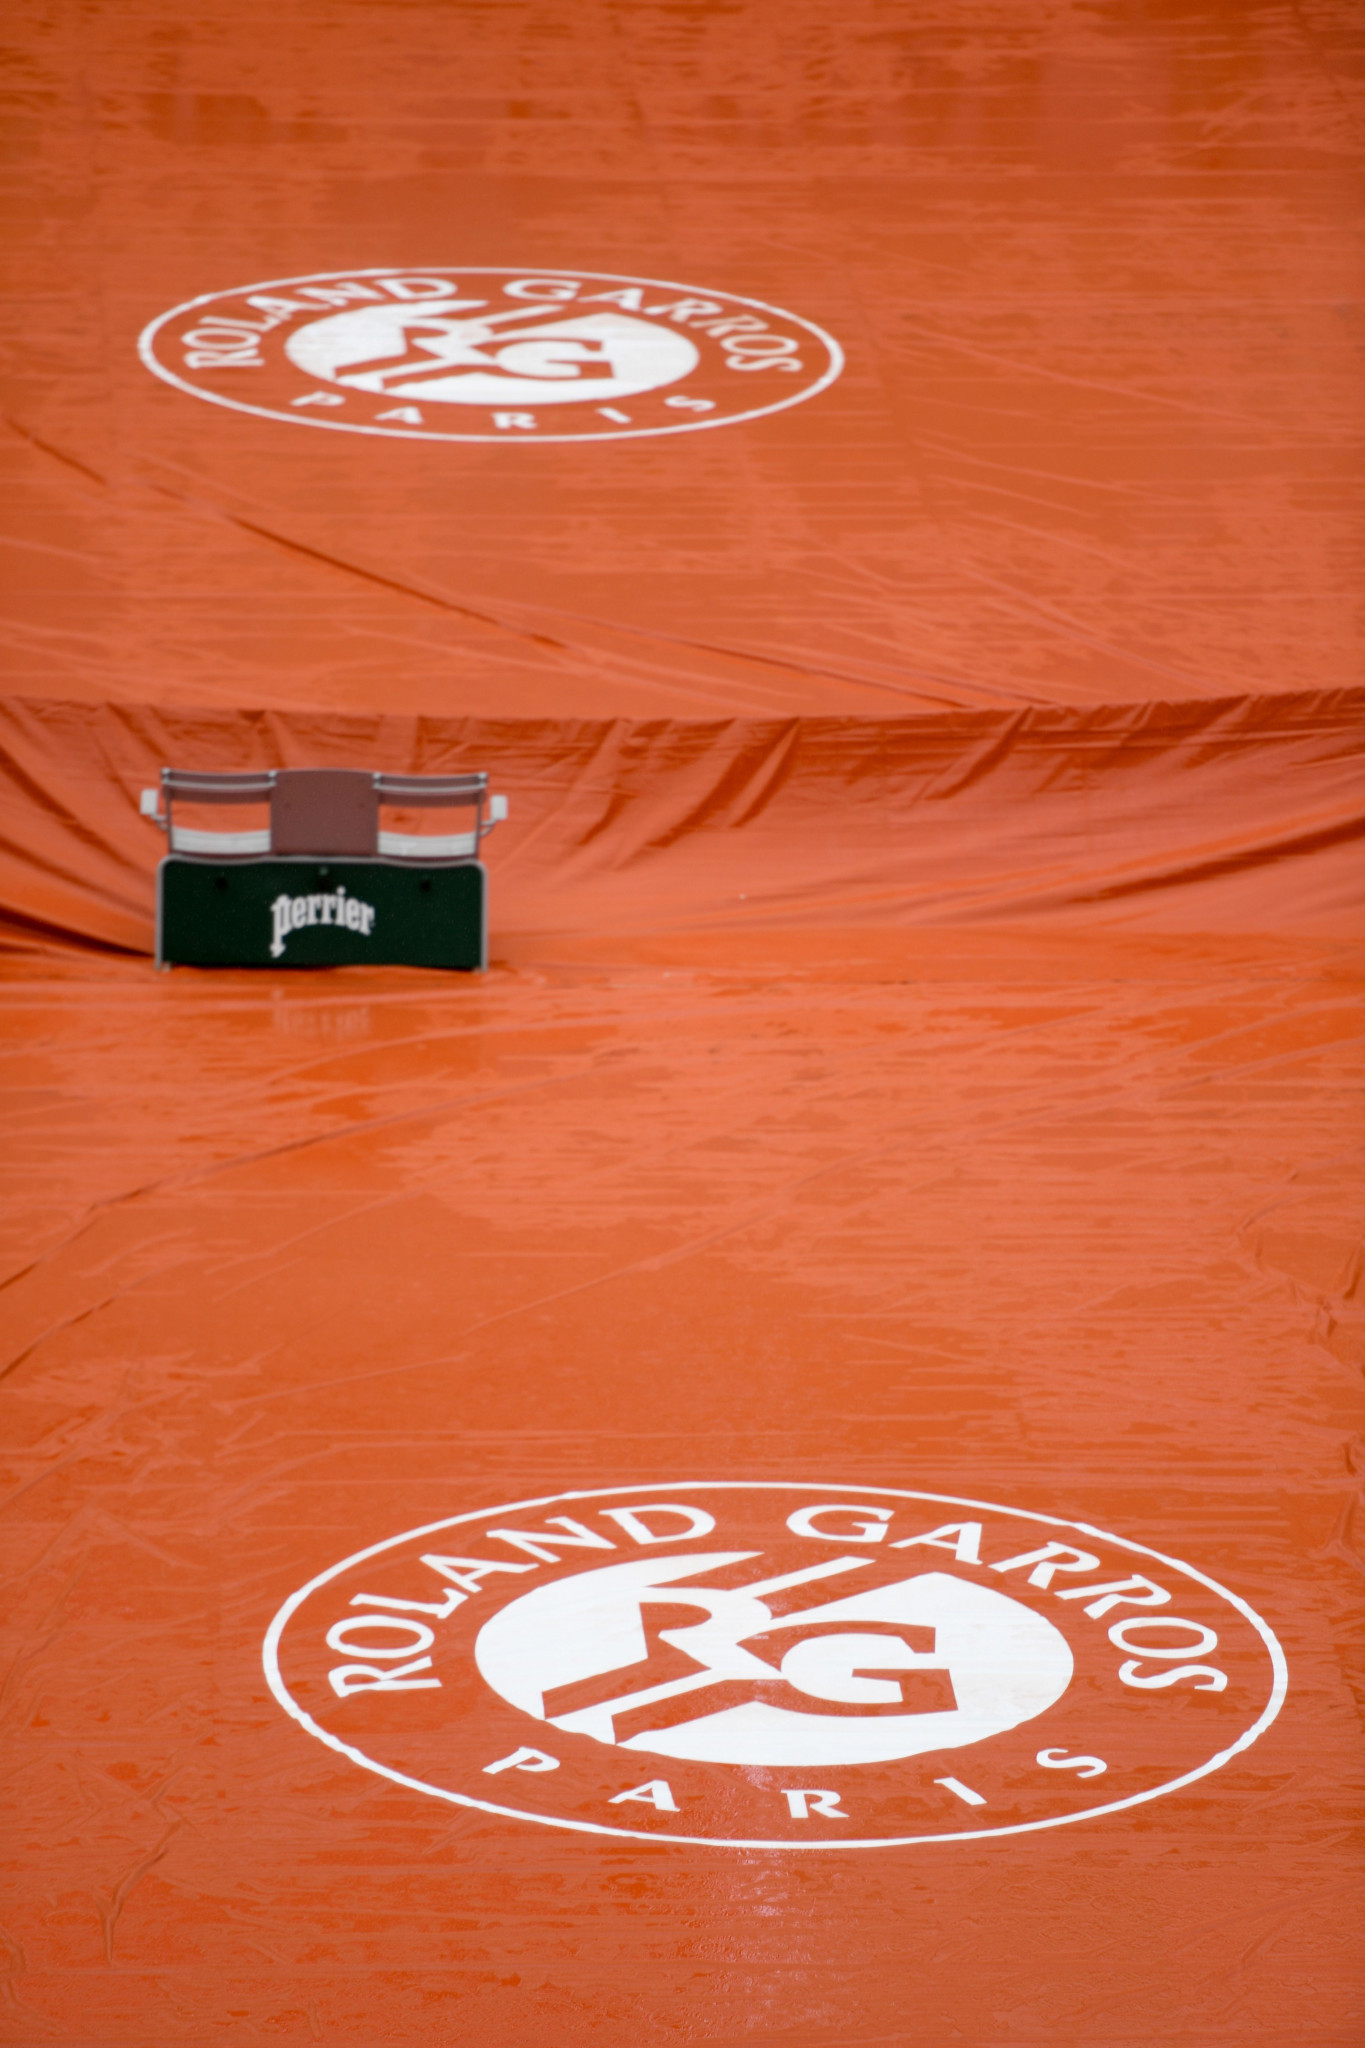 A court surface is covered as rain falls on day 11 of the French Open in Paris ©Getty Images